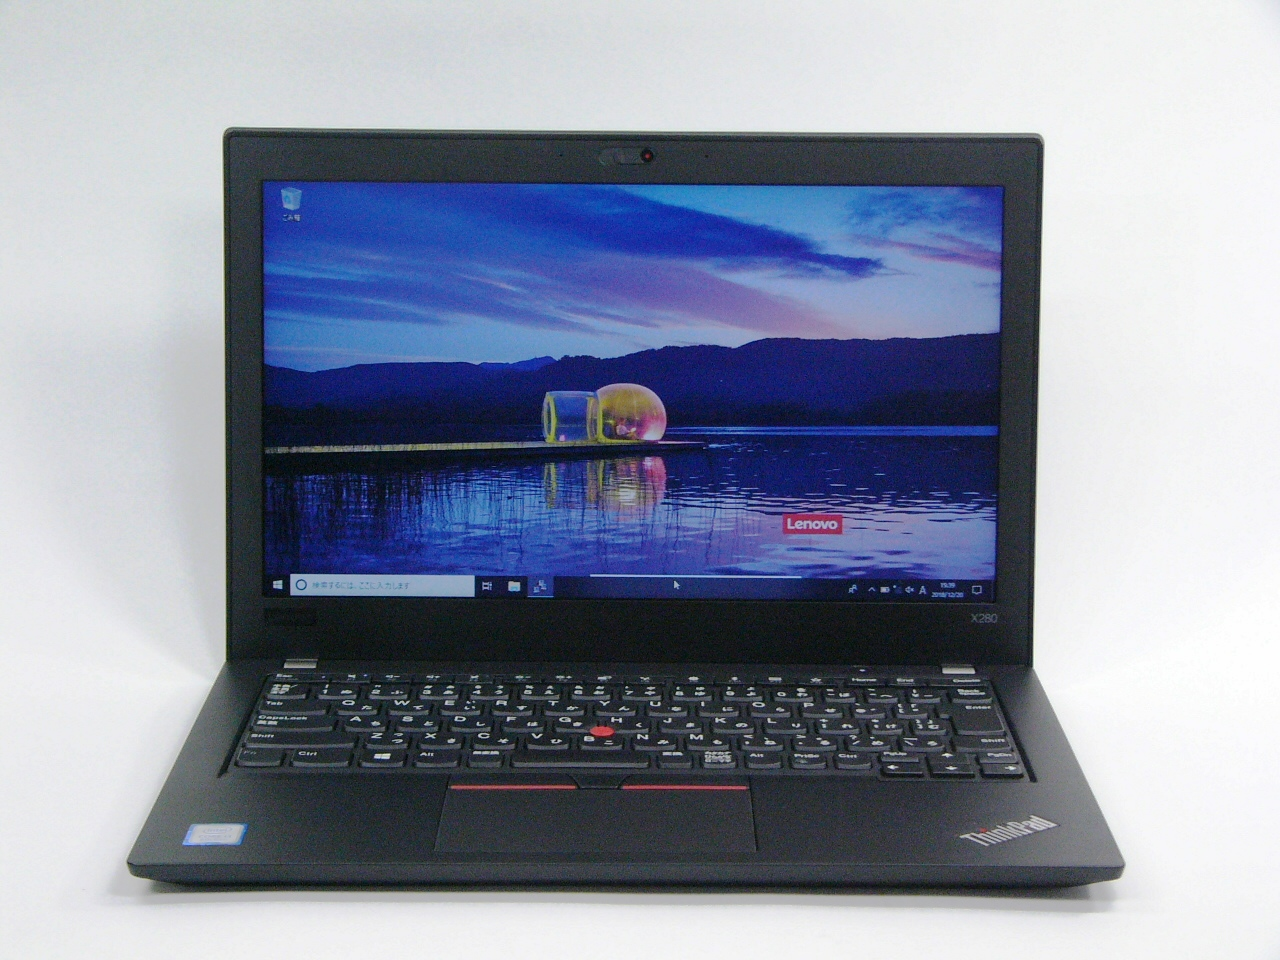 美品 ThinkPad X280 /Windows 10 Pro /Core i3-8130U /256GB SSD 4GB